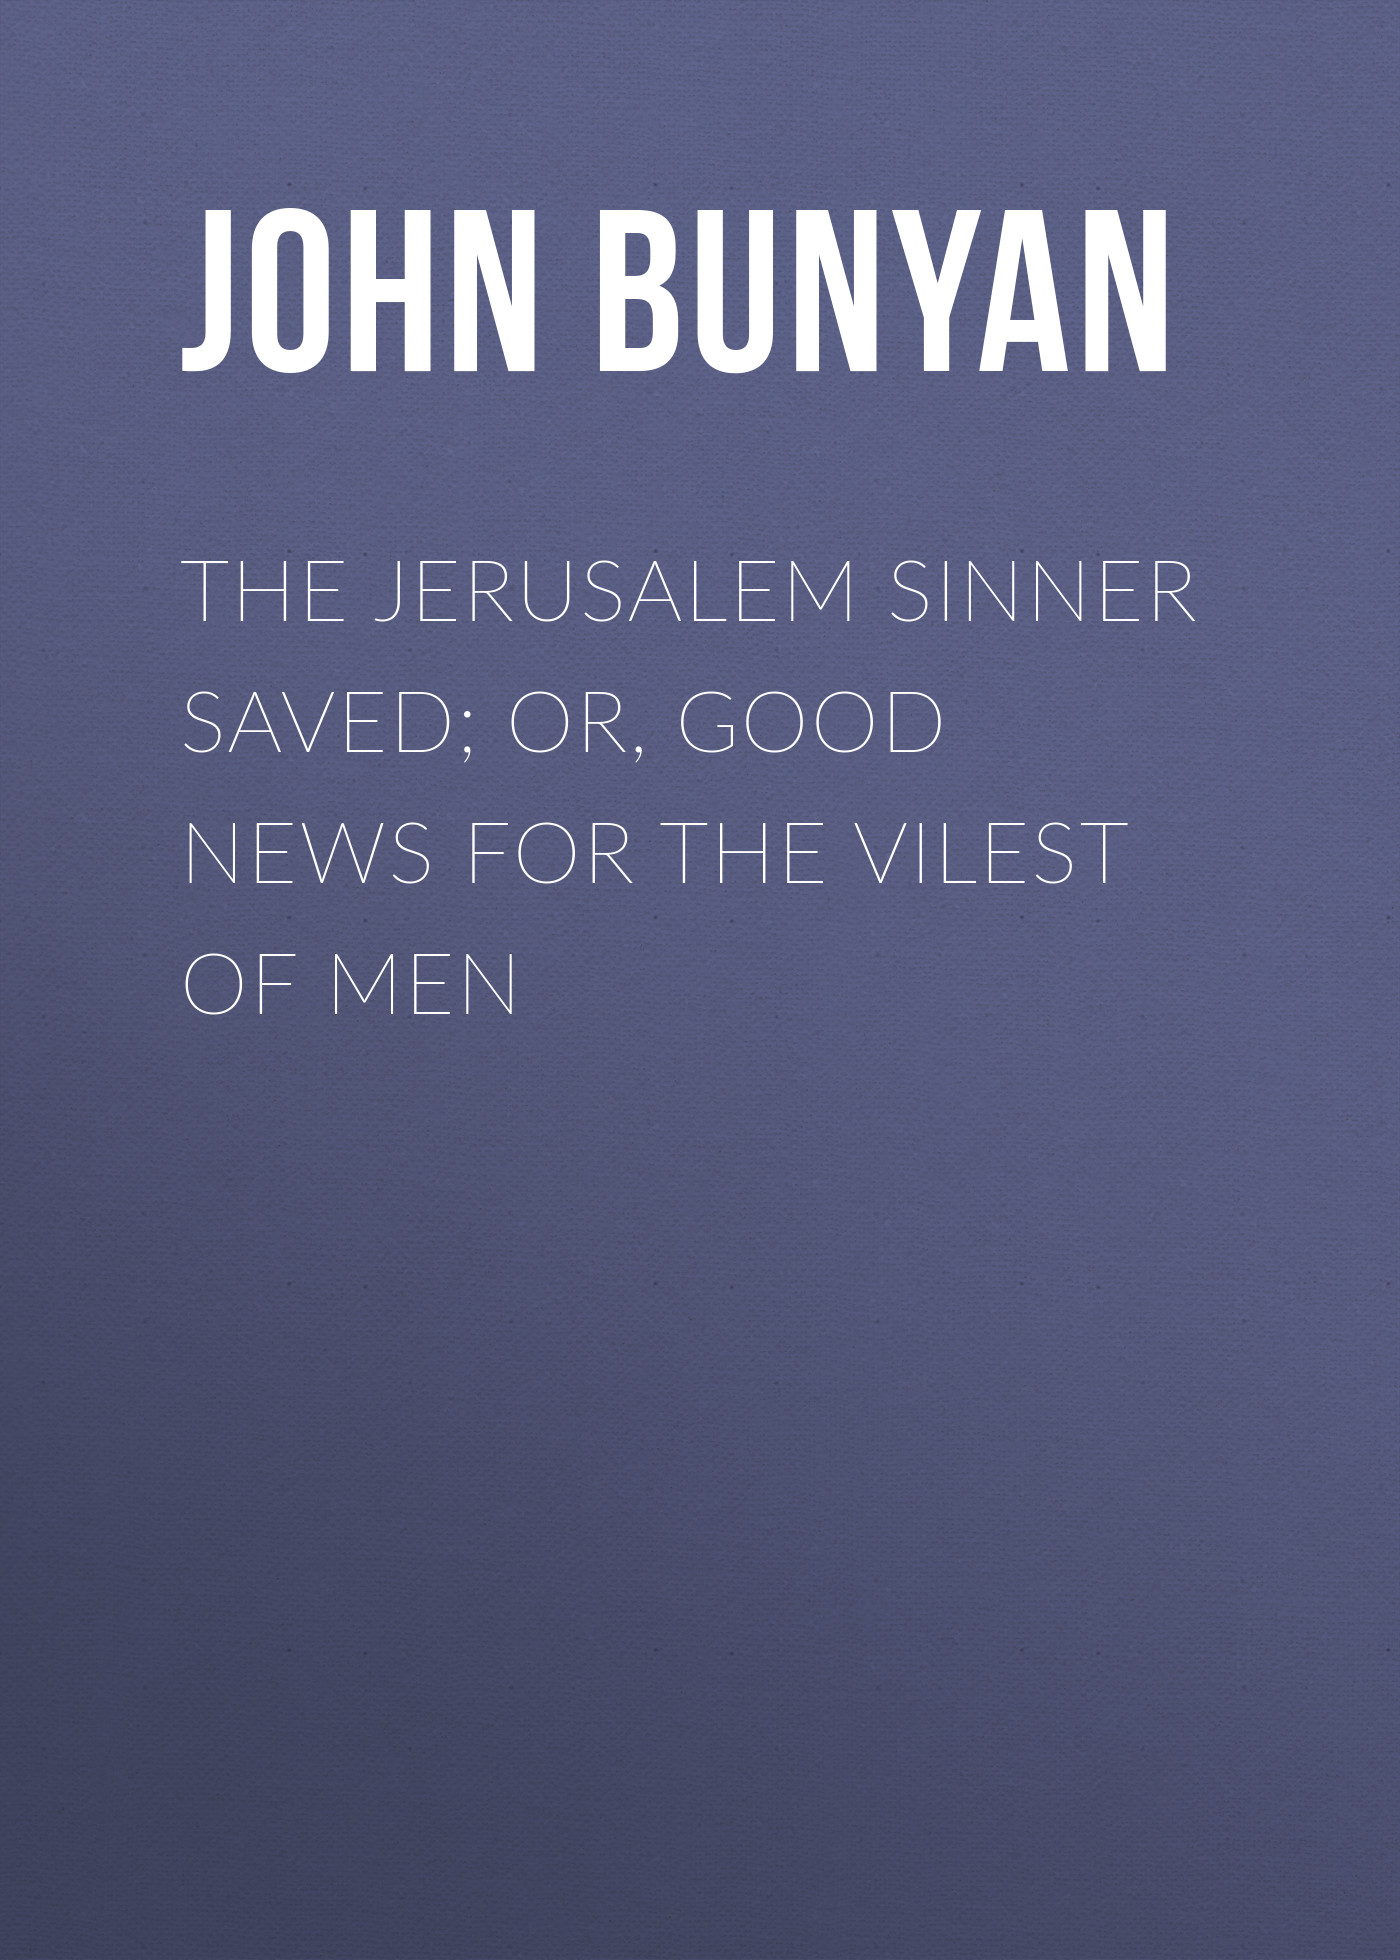 John Bunyan The Jerusalem Sinner Saved; or, Good News for the Vilest of Men lachapelle good news